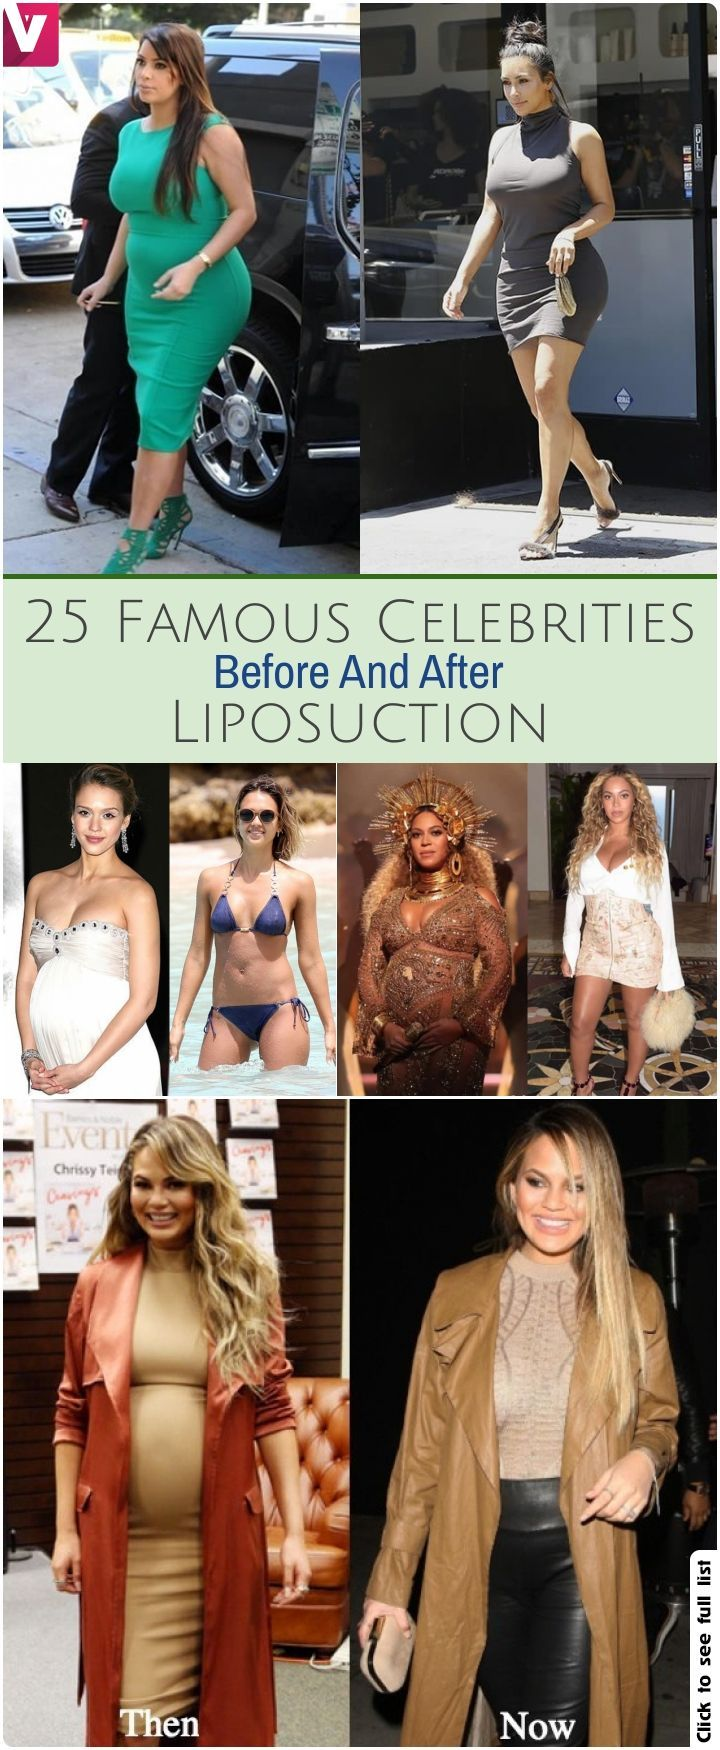 25 Famous Celebrities Before And After Liposuction